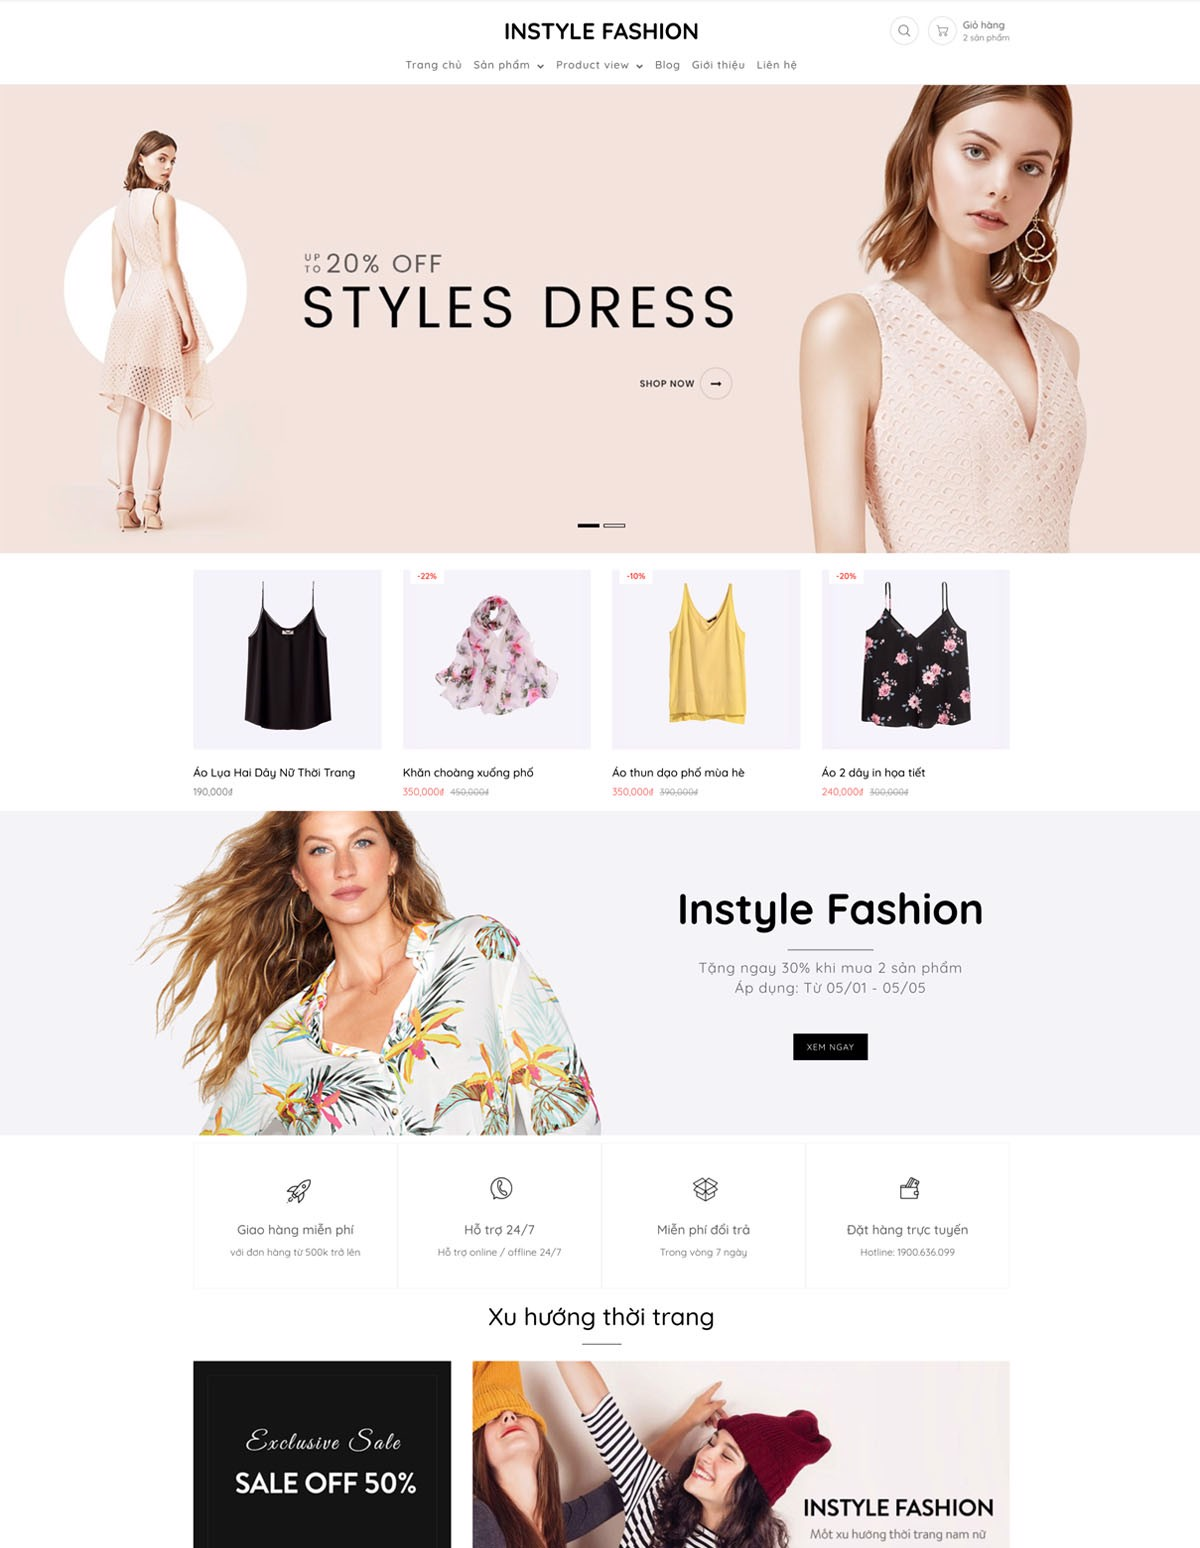 Mẫu website instyle fashion